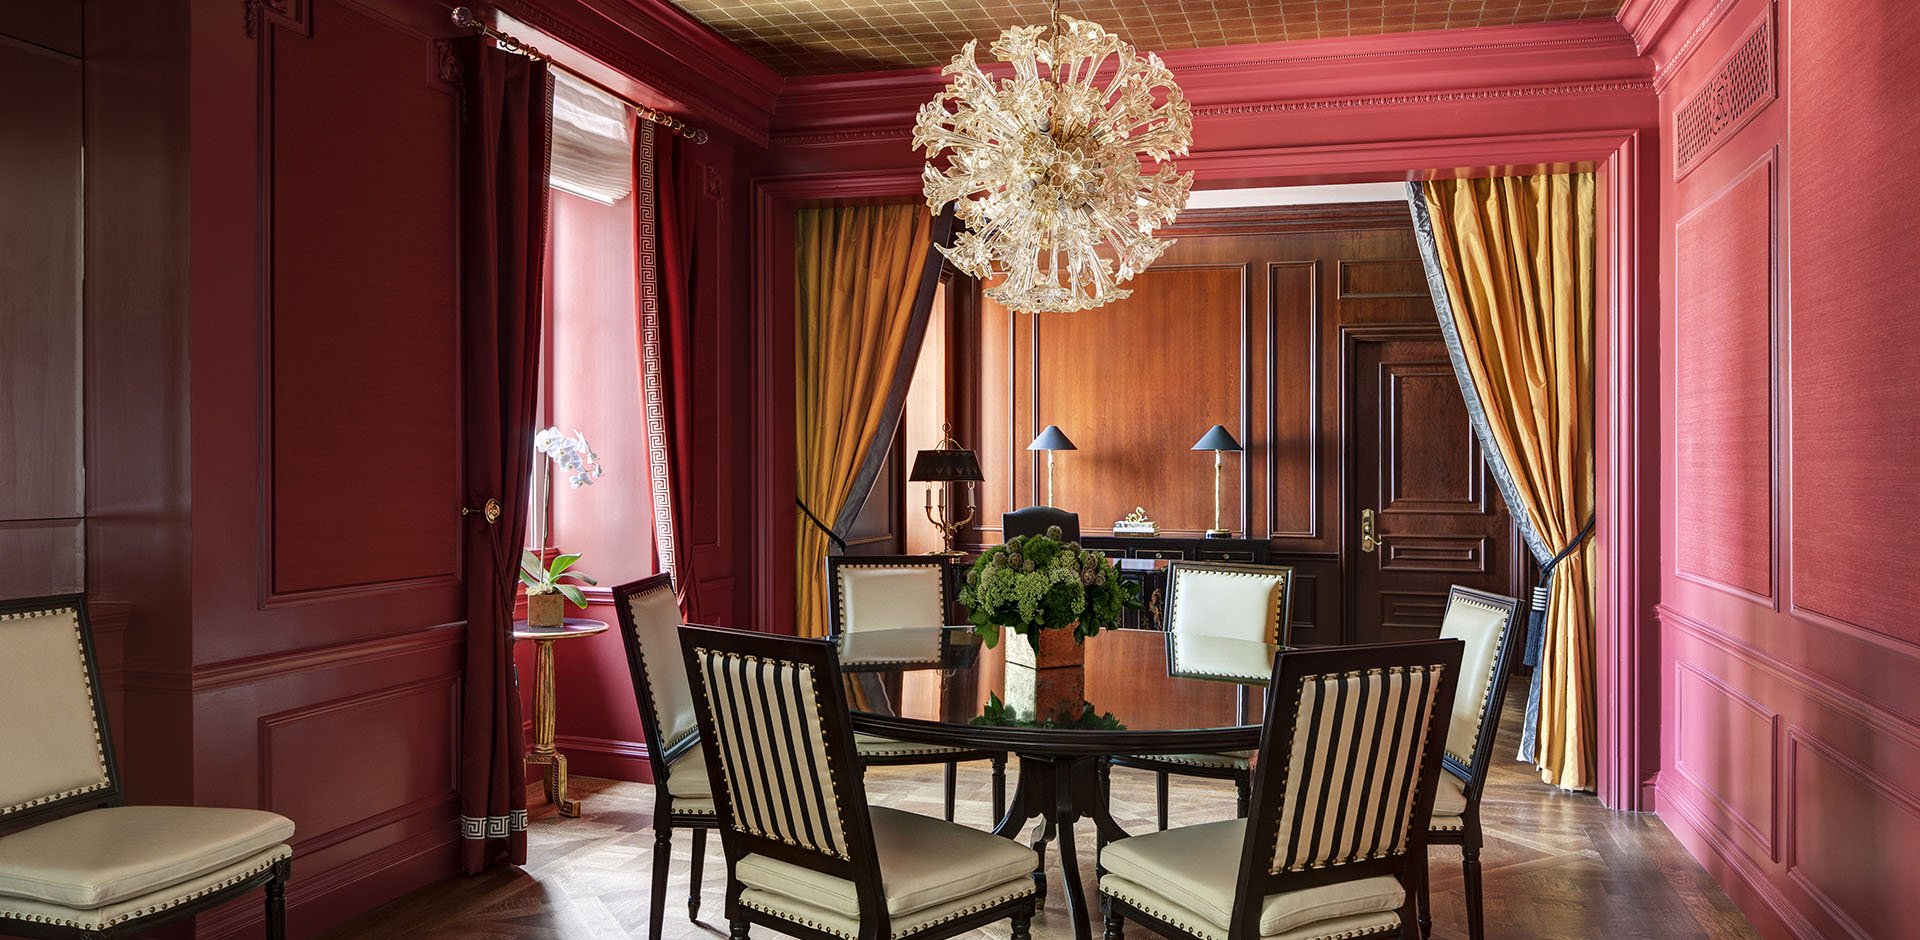 St Regis, New York - Imperial DiningRoom